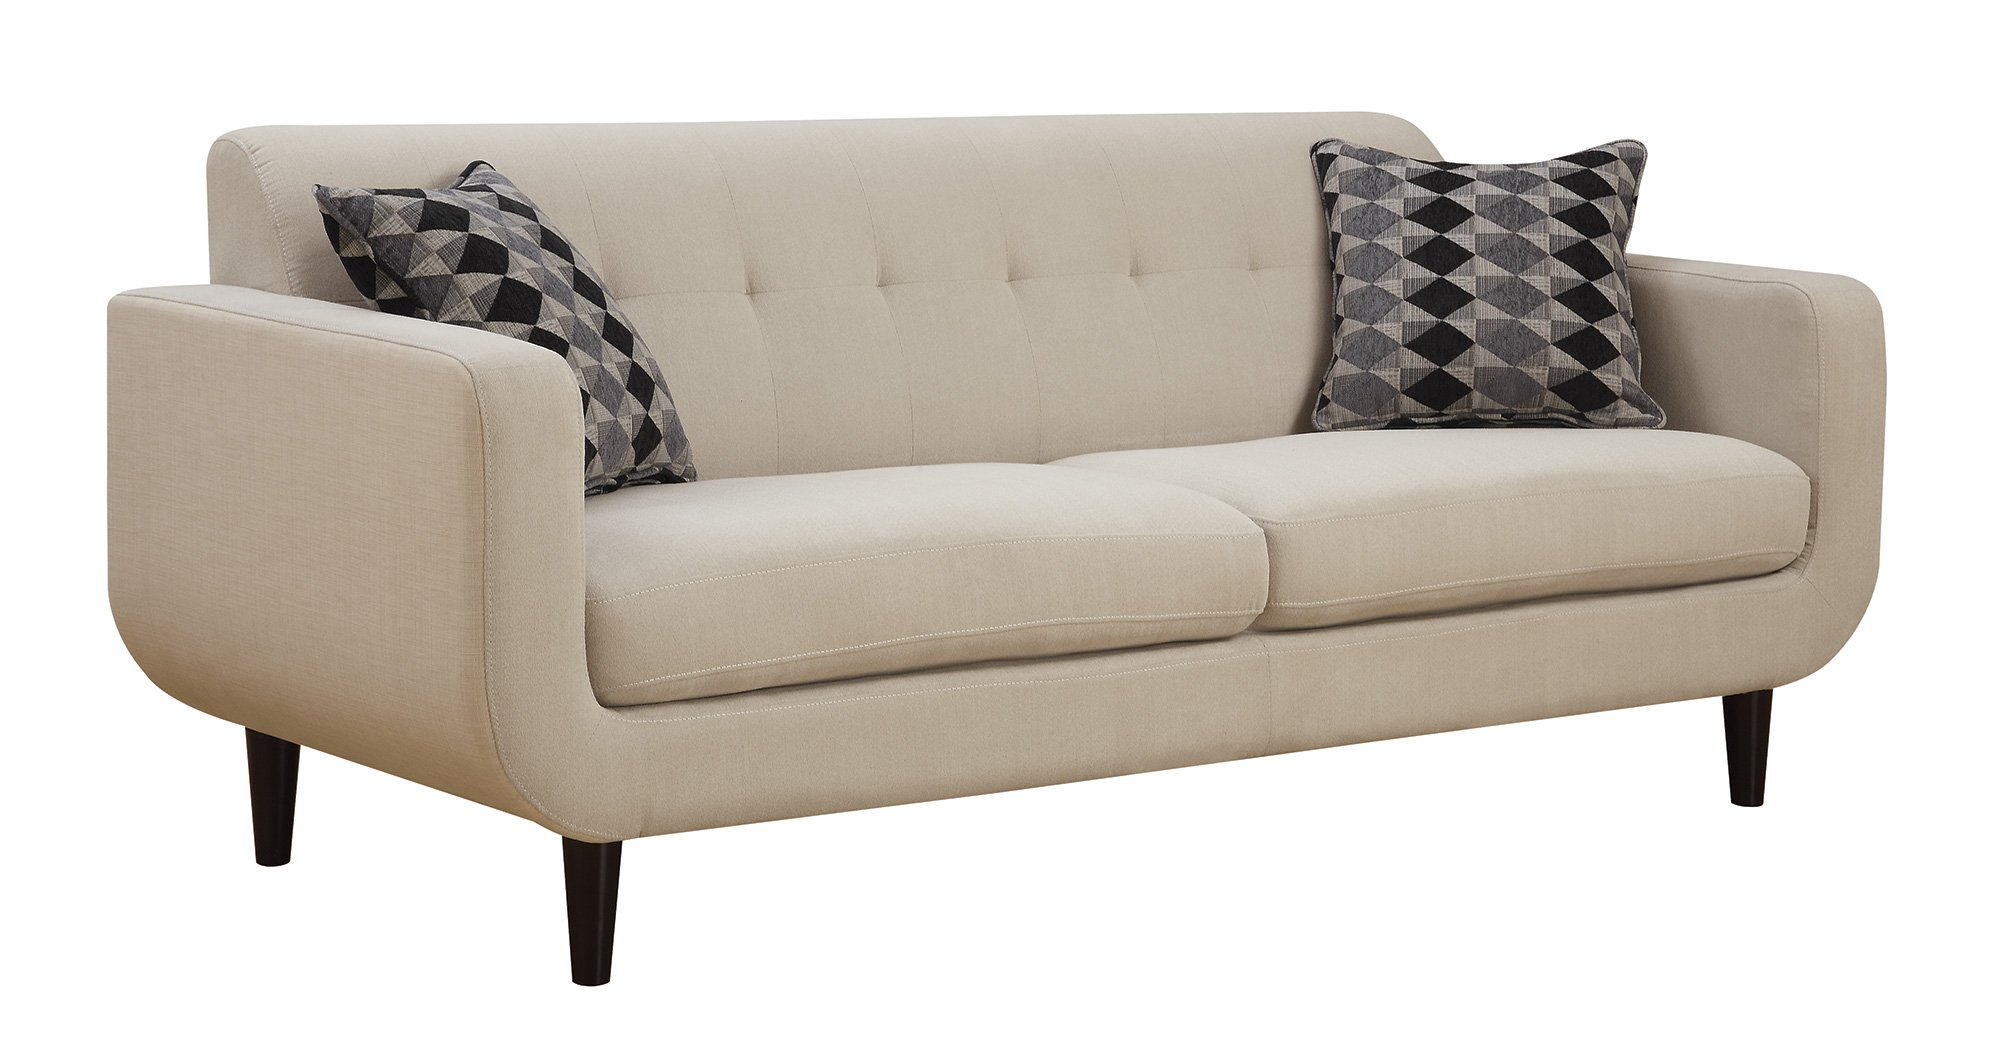 Coaster Home Furnishings 505204 Stansall Collection Sofa, Ivory